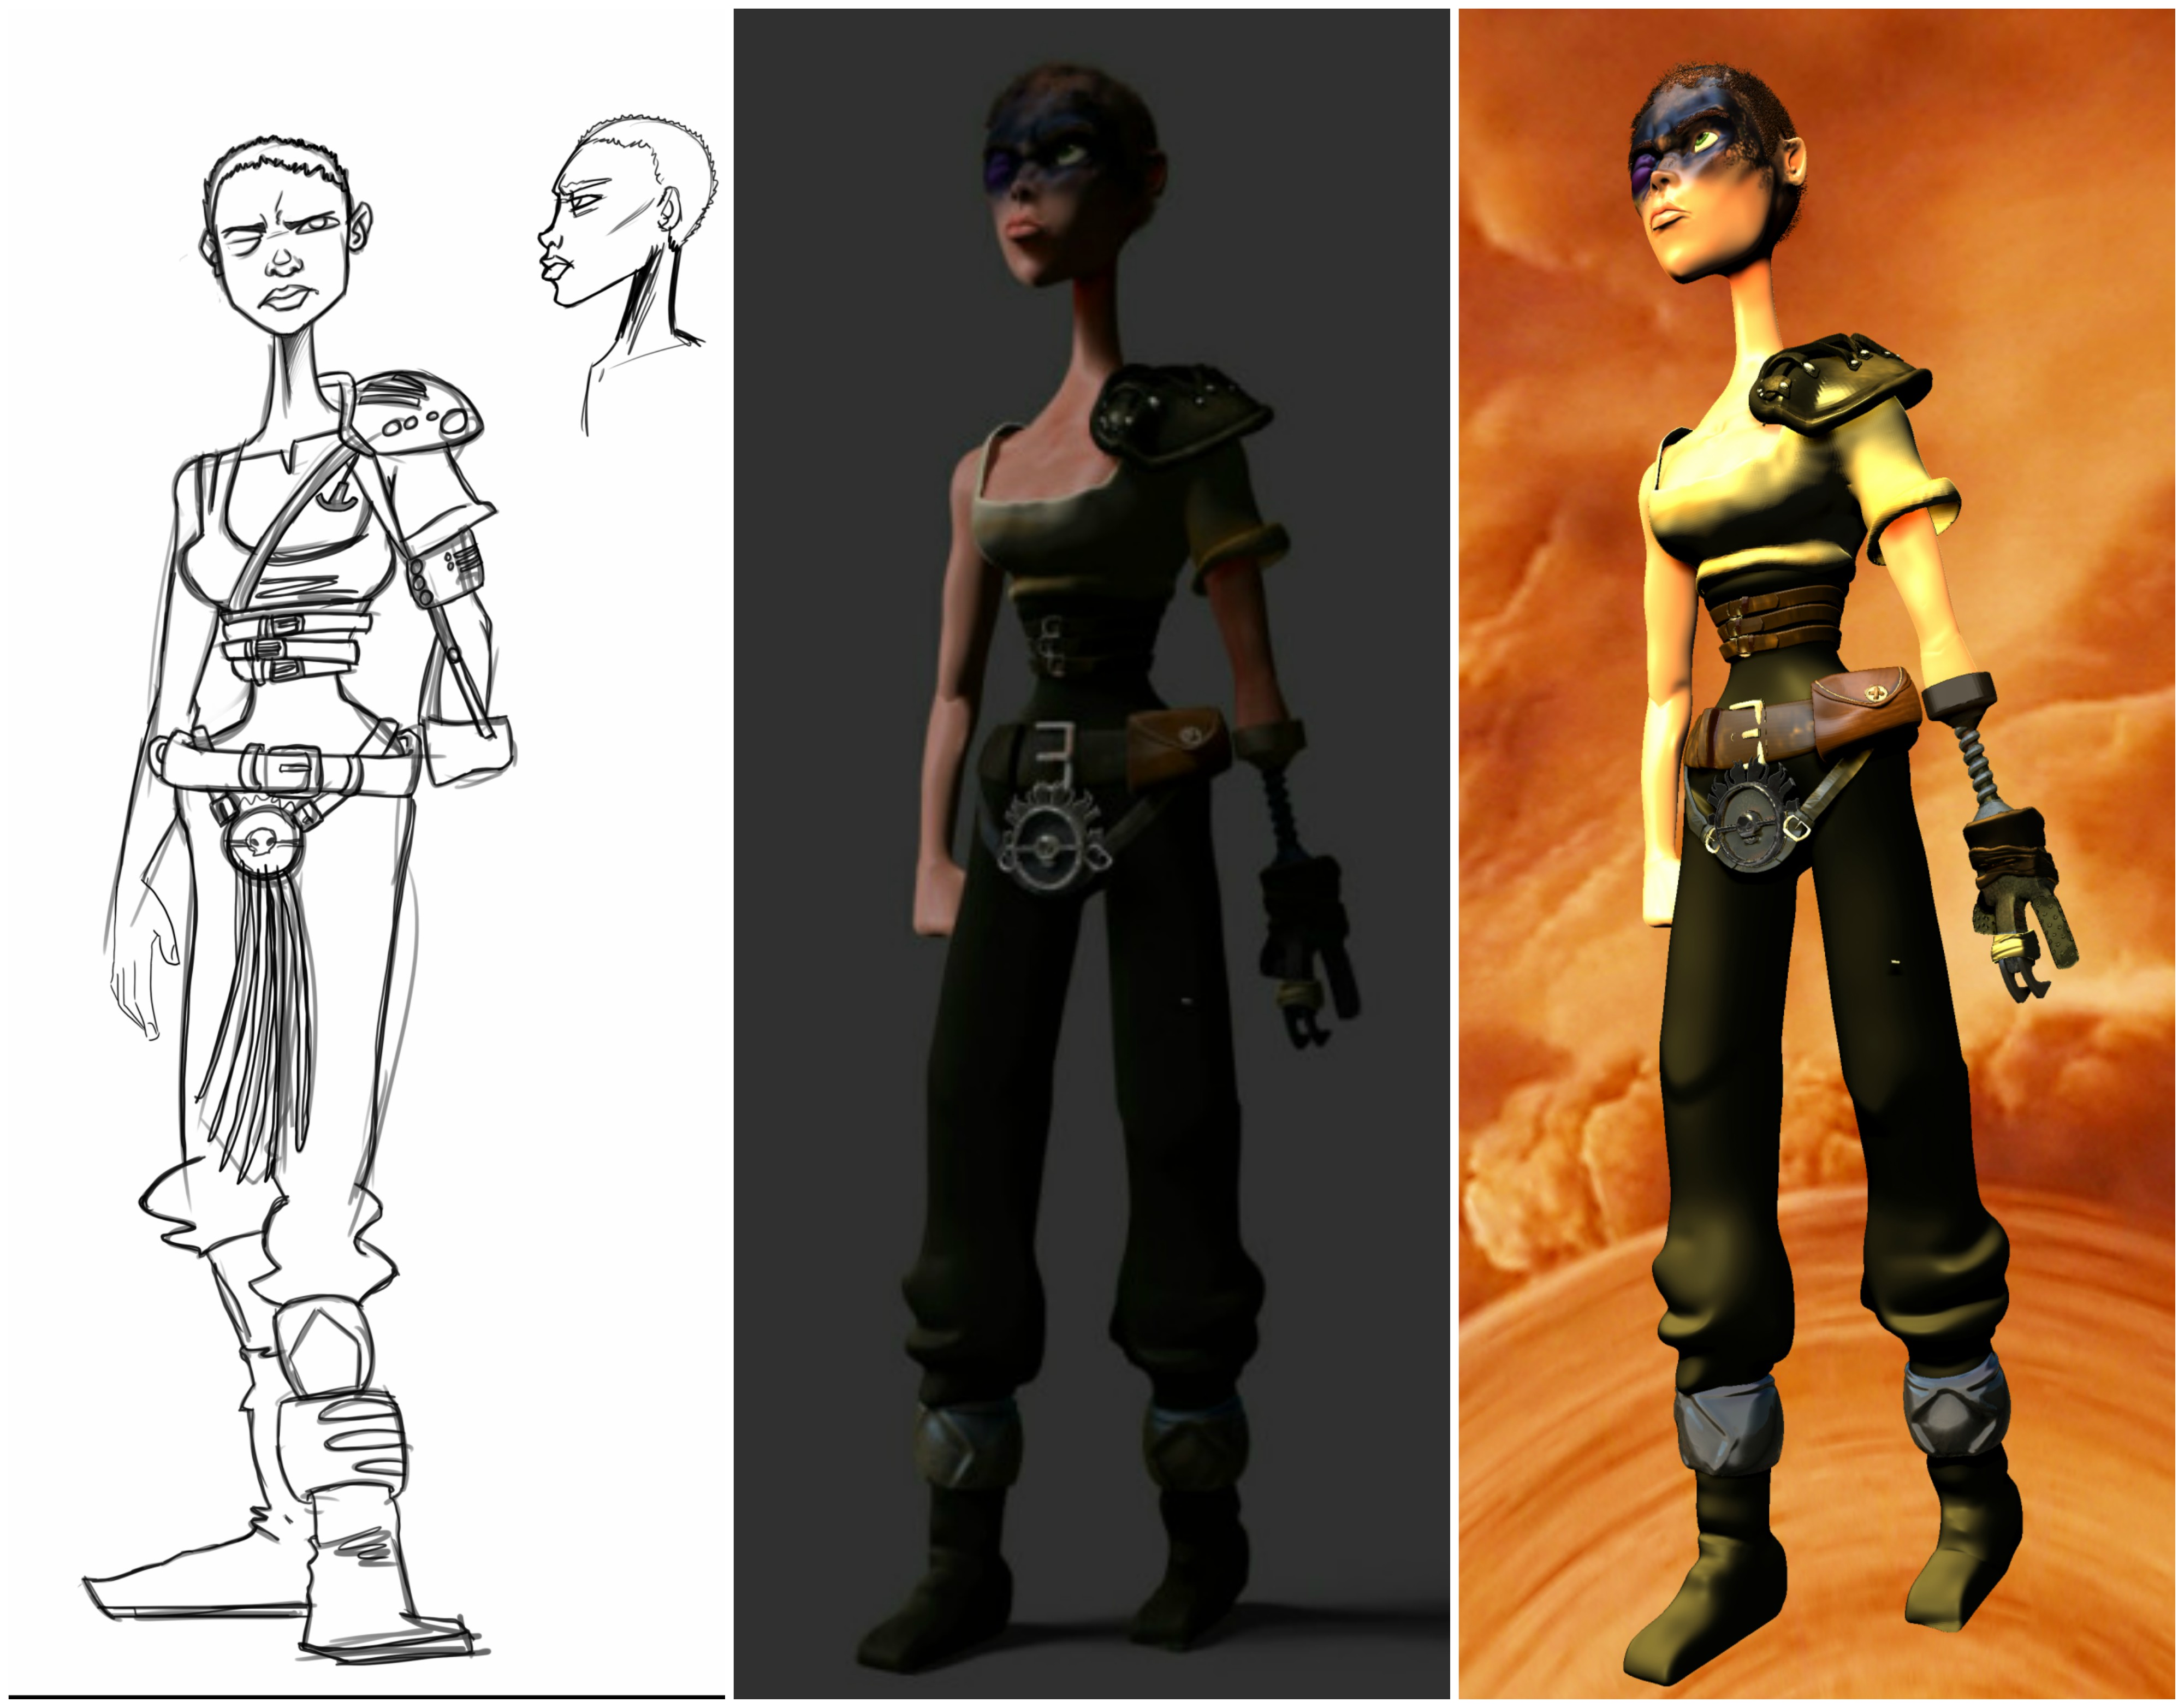 Furiosa - From concept to model